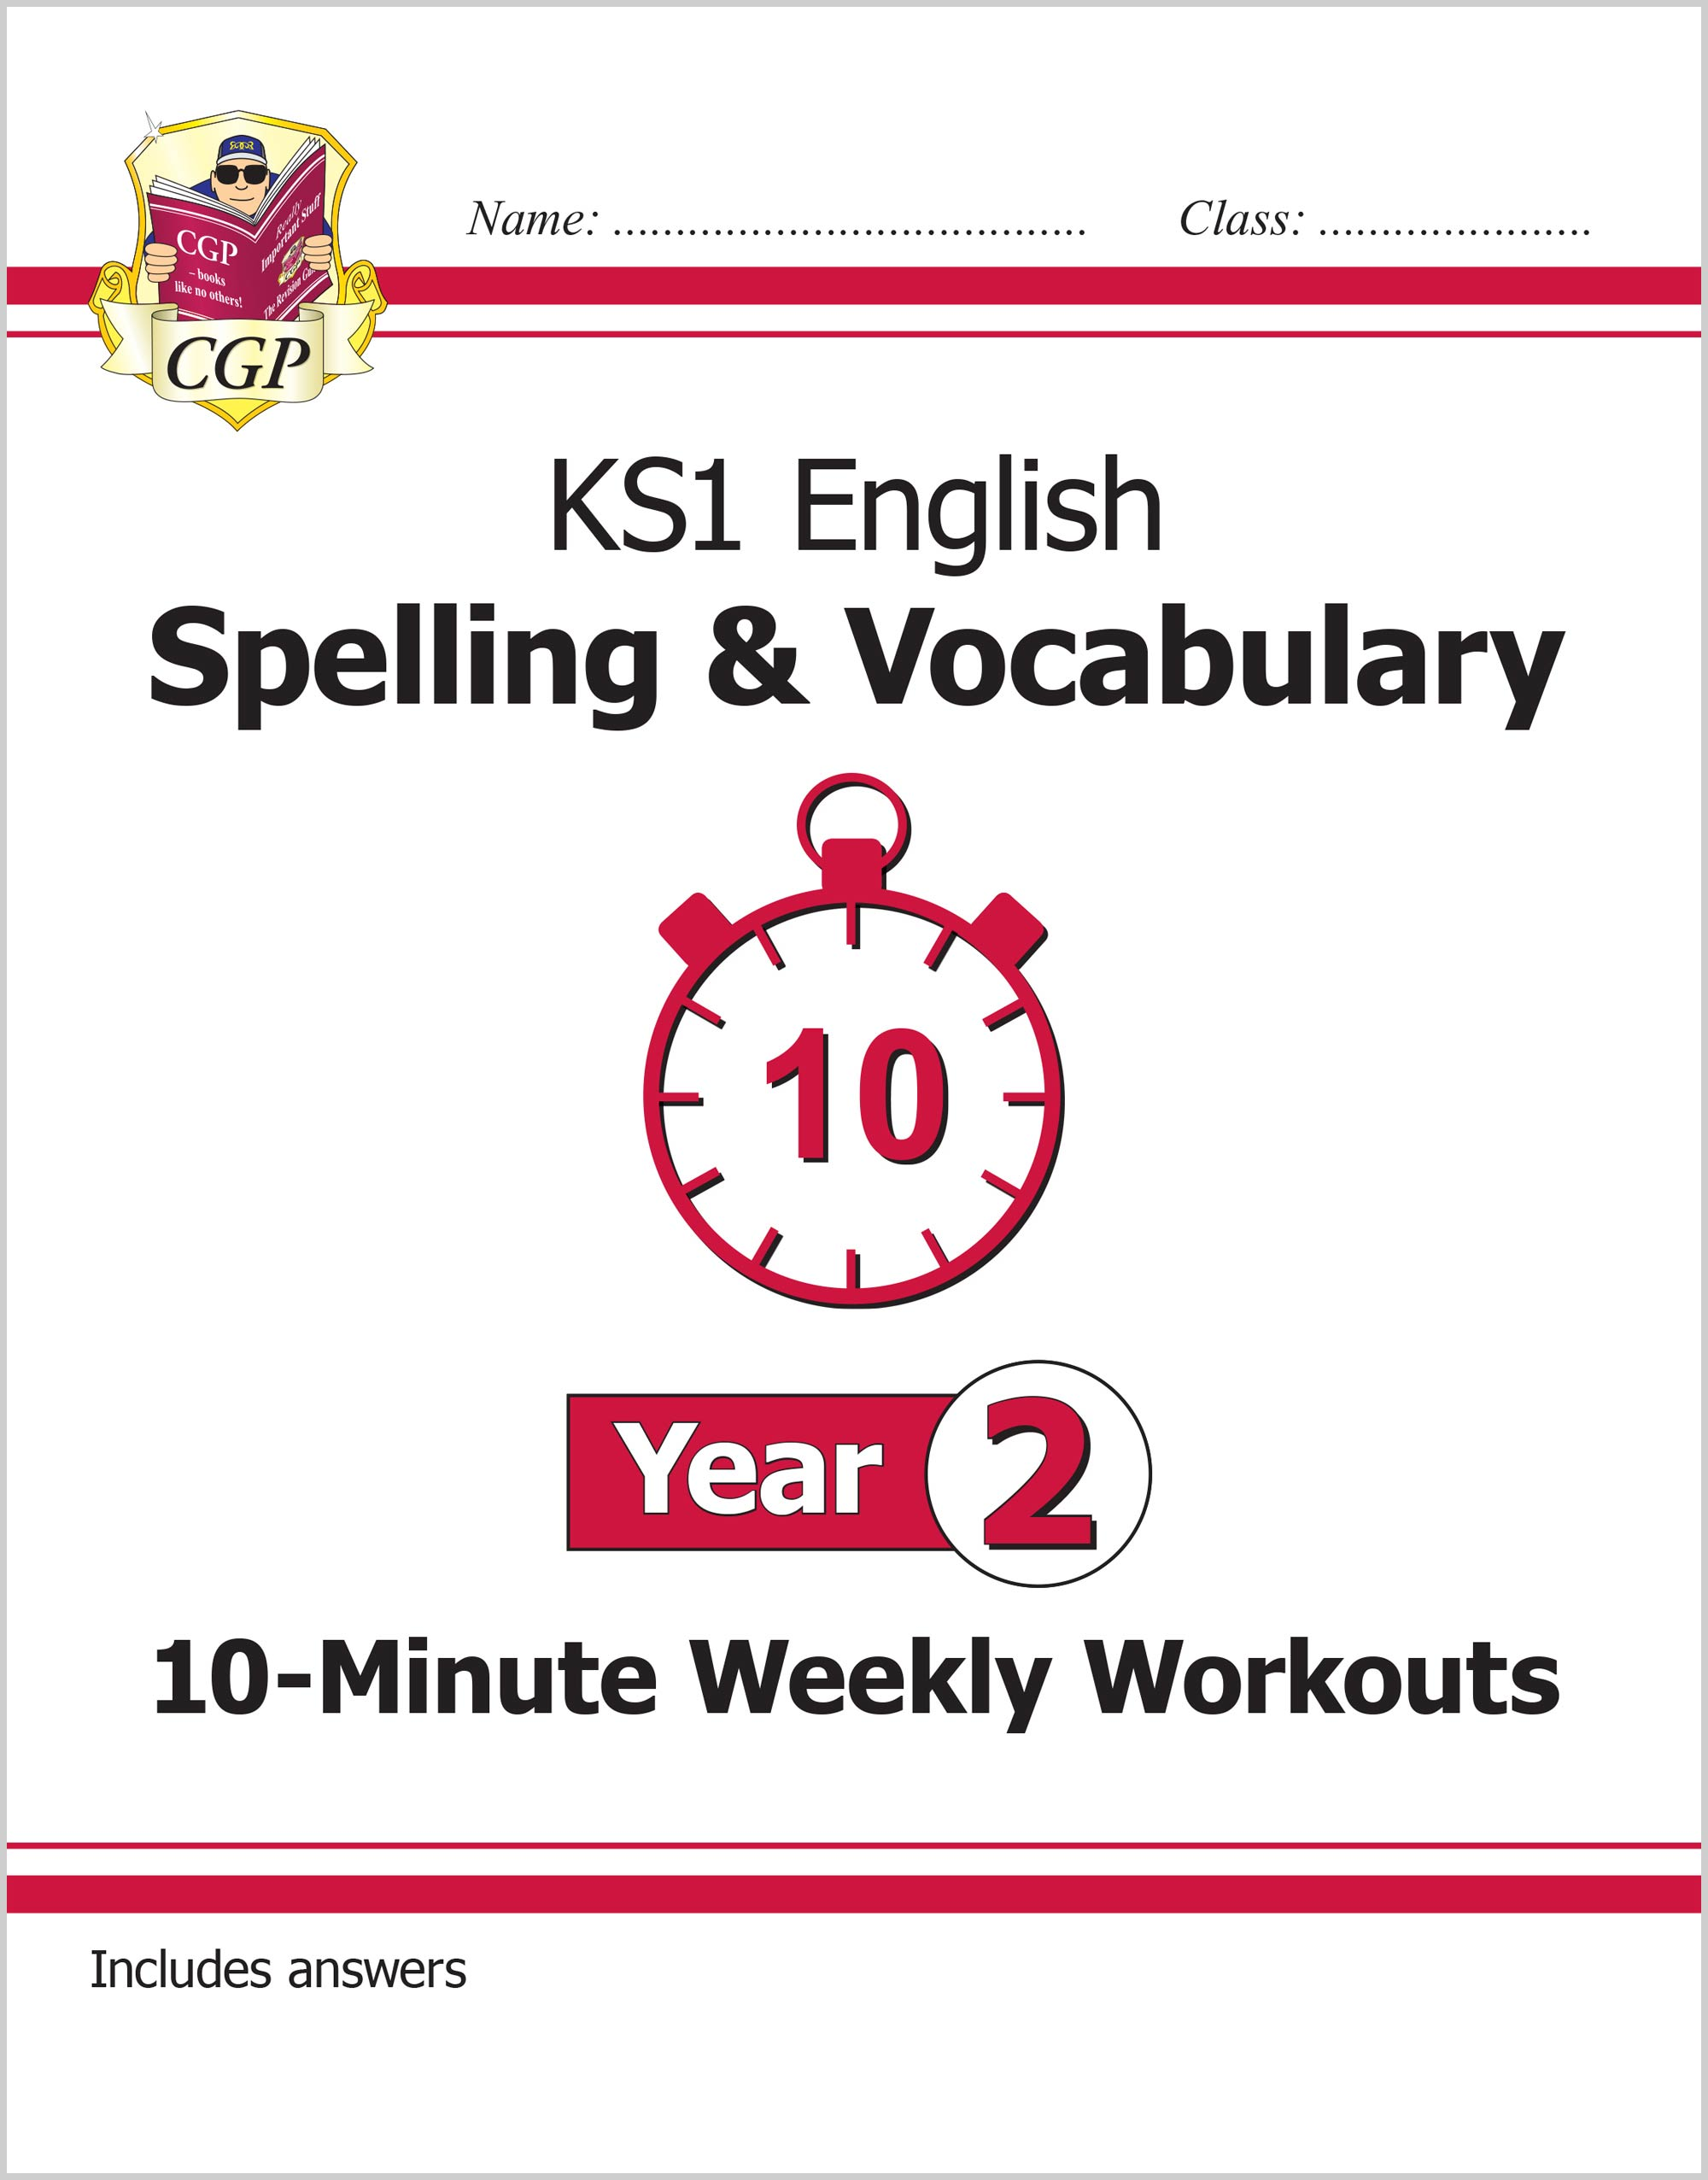 E2VSXW11 - New KS1 English 10-Minute Weekly Workouts: Spelling & Vocabulary - Year 2